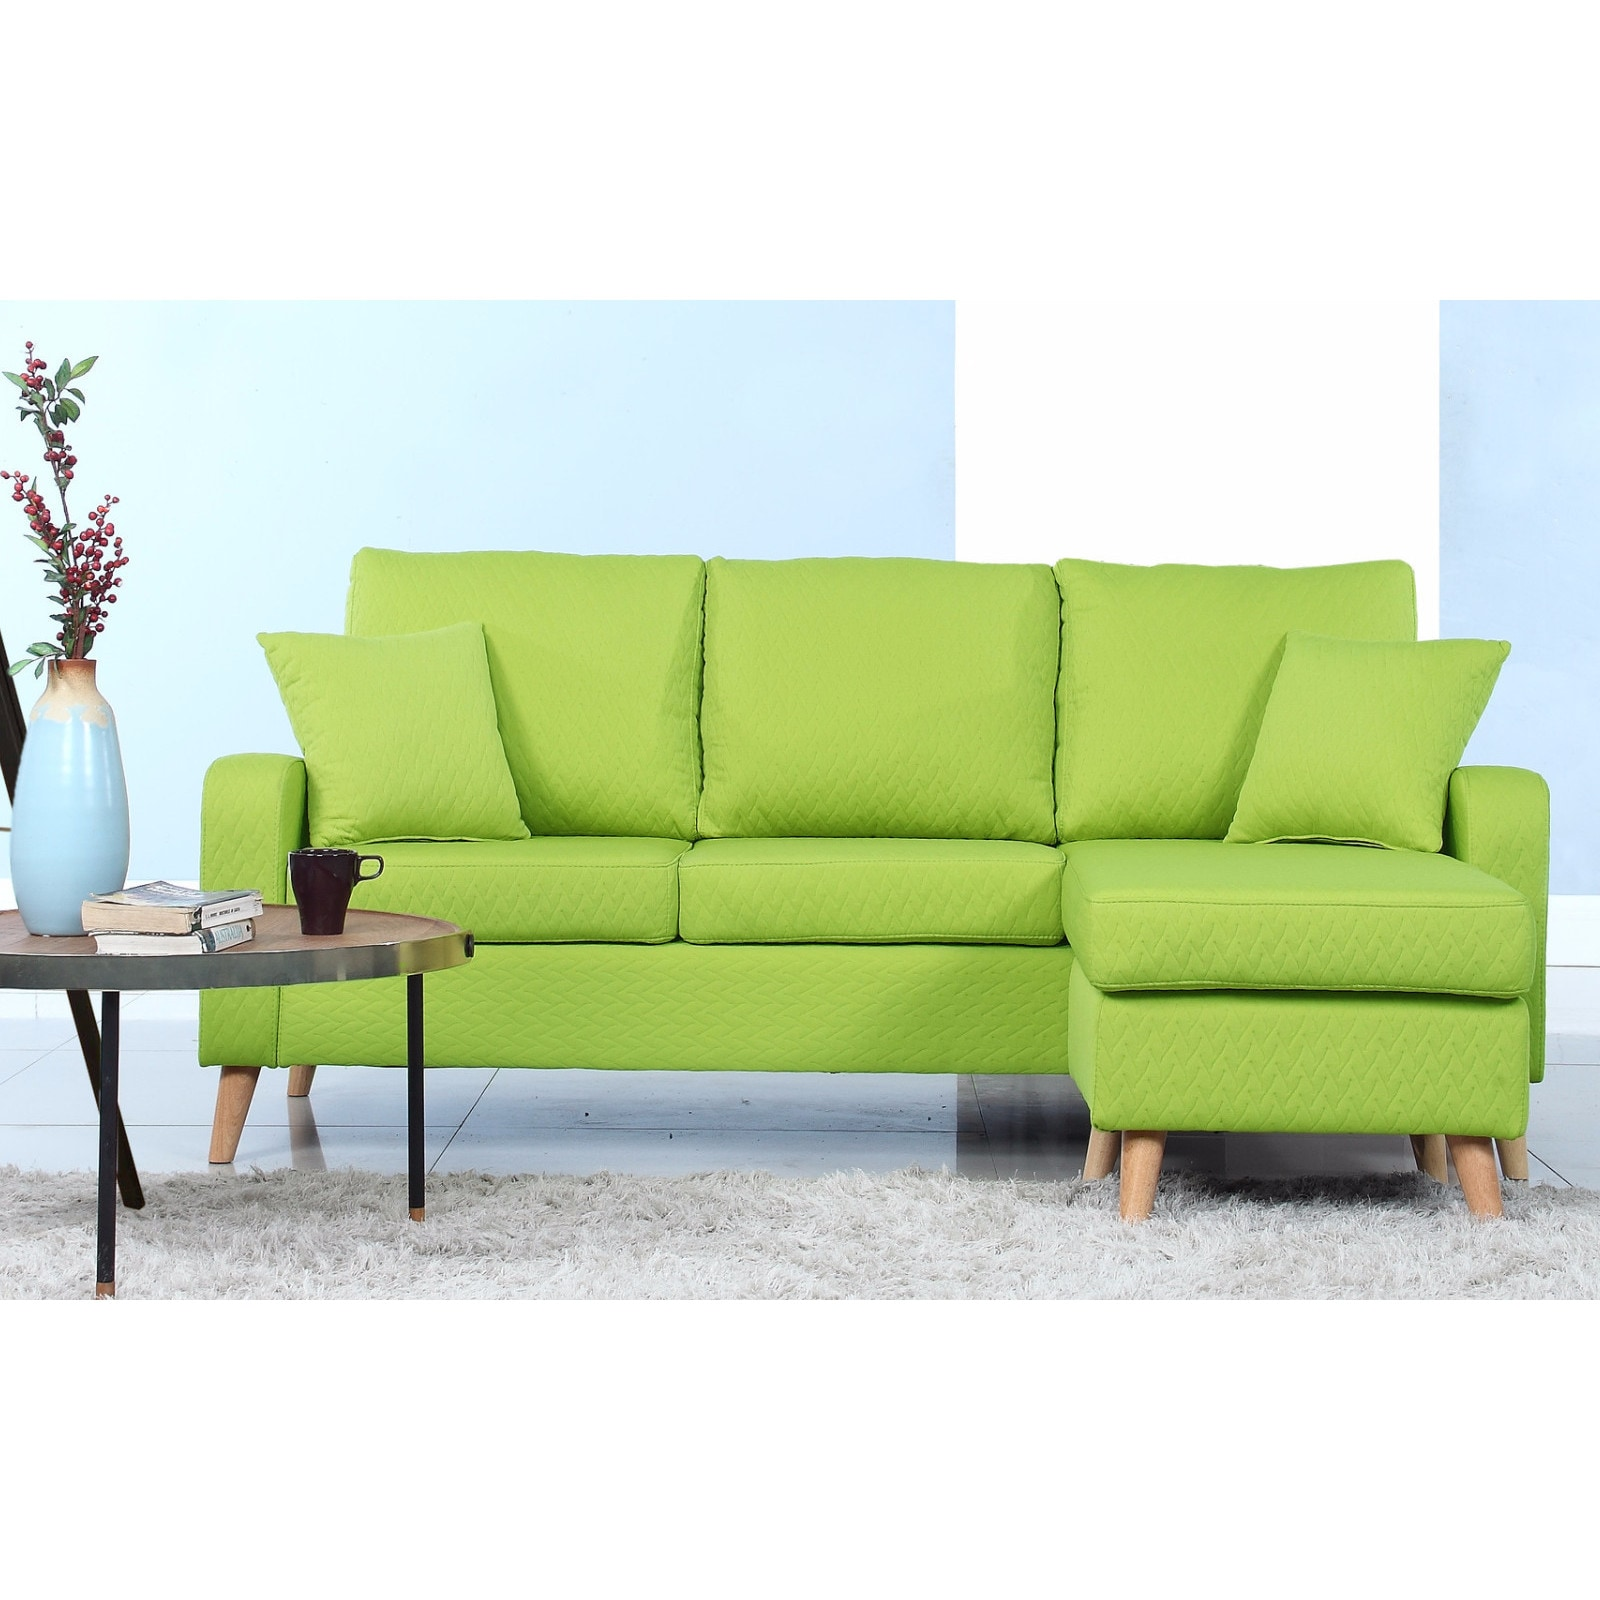 furniture century article mid couch green grass velvet tufted sectional scandinavian pin modern sectionals sofa left and sven